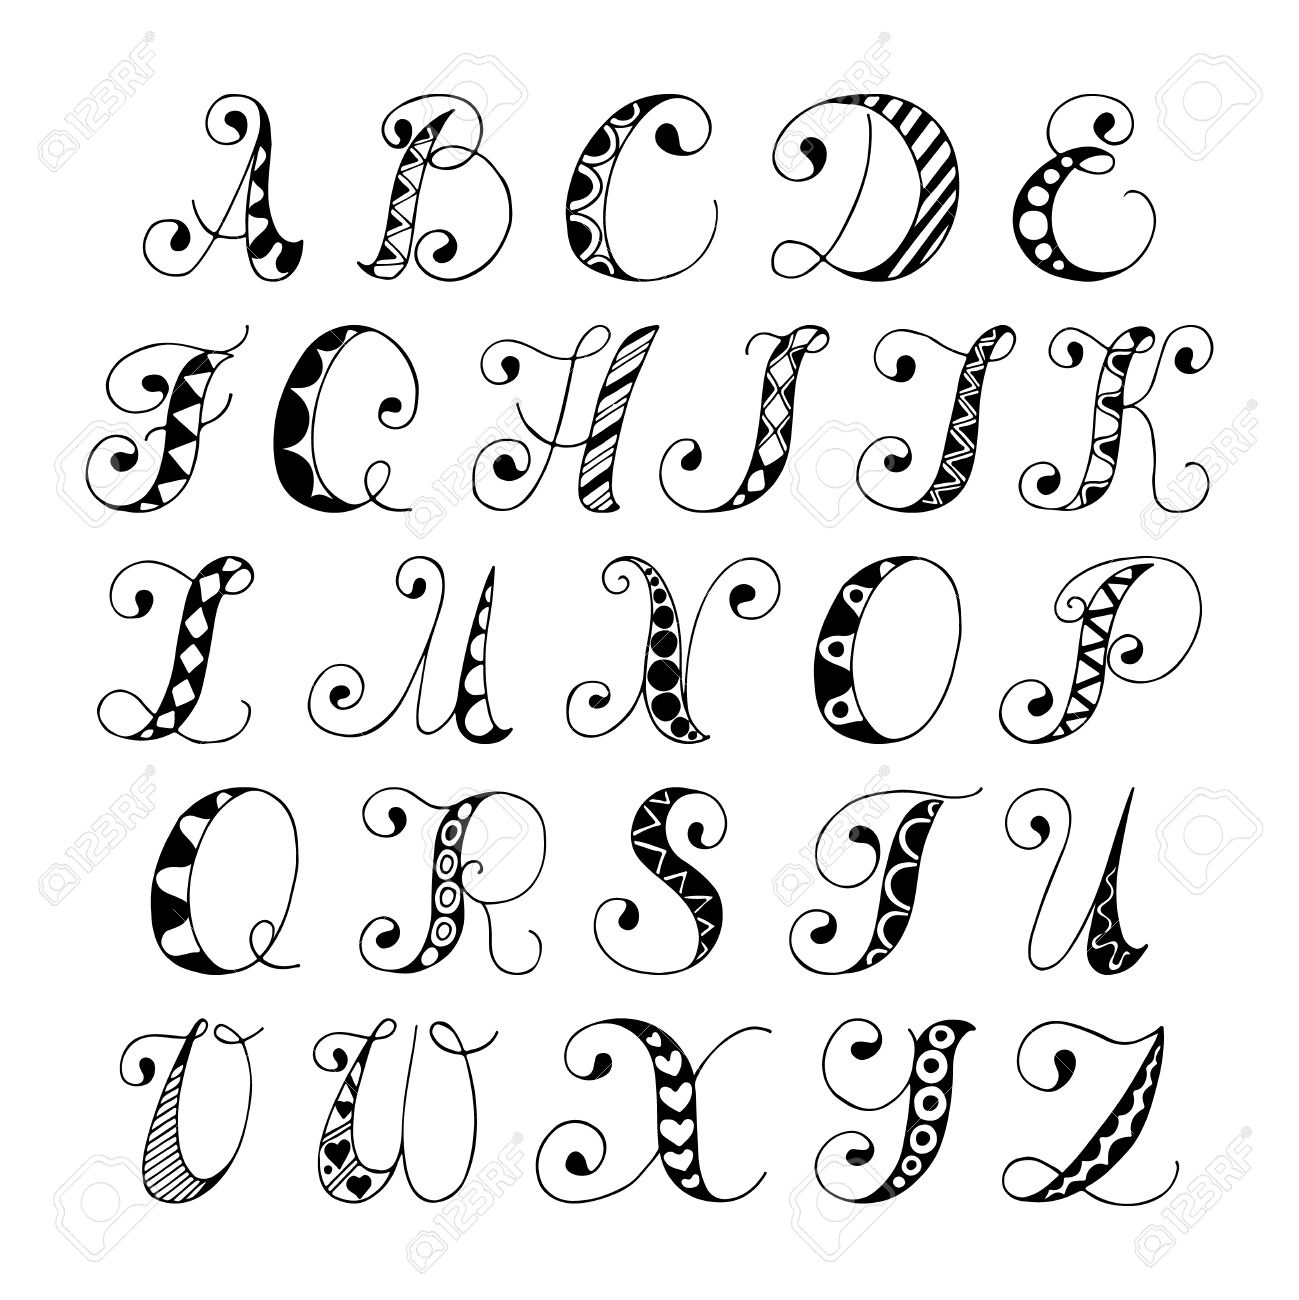 Drawn number fancy font #14